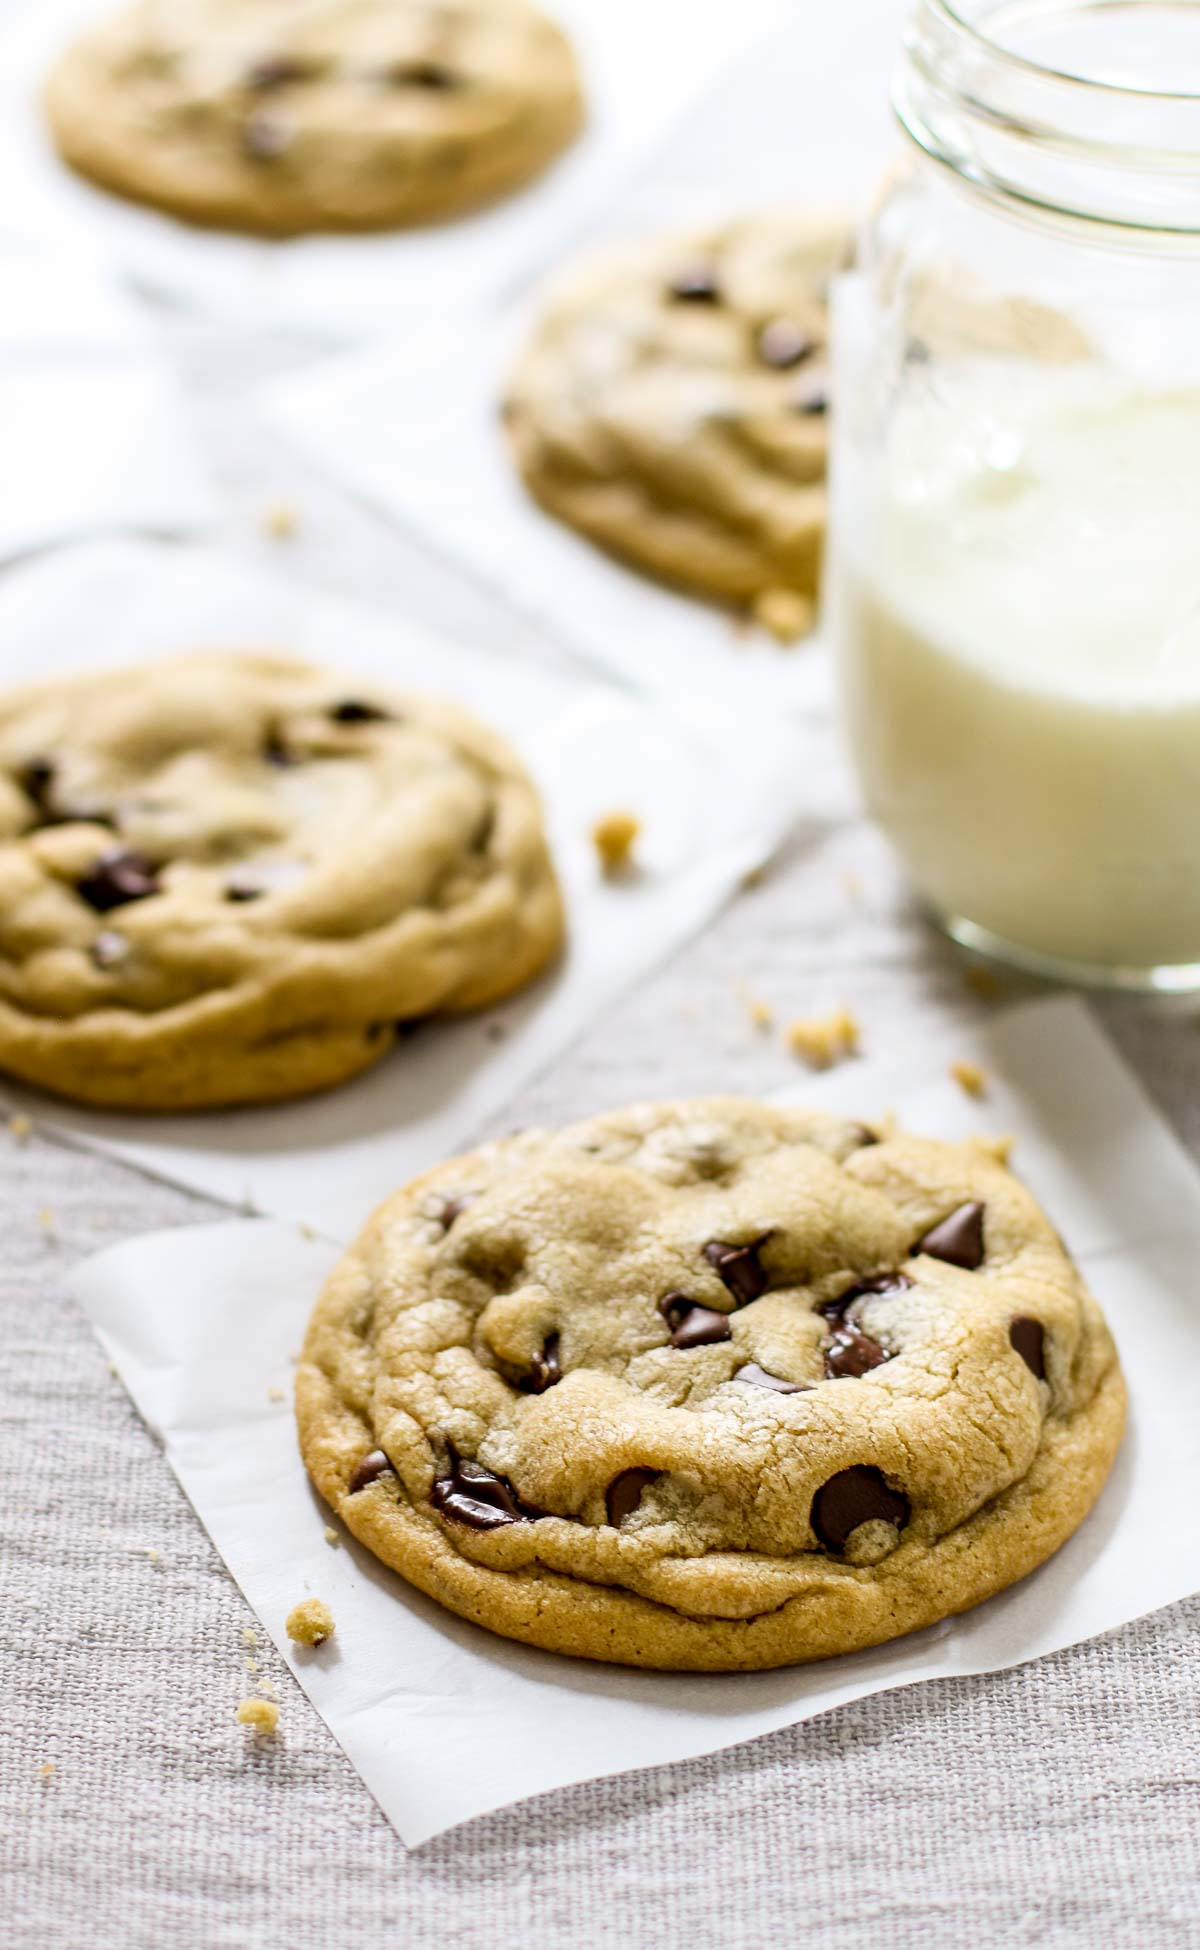 Chocolate Chip Cookies With Shortening And No Brown Sugar